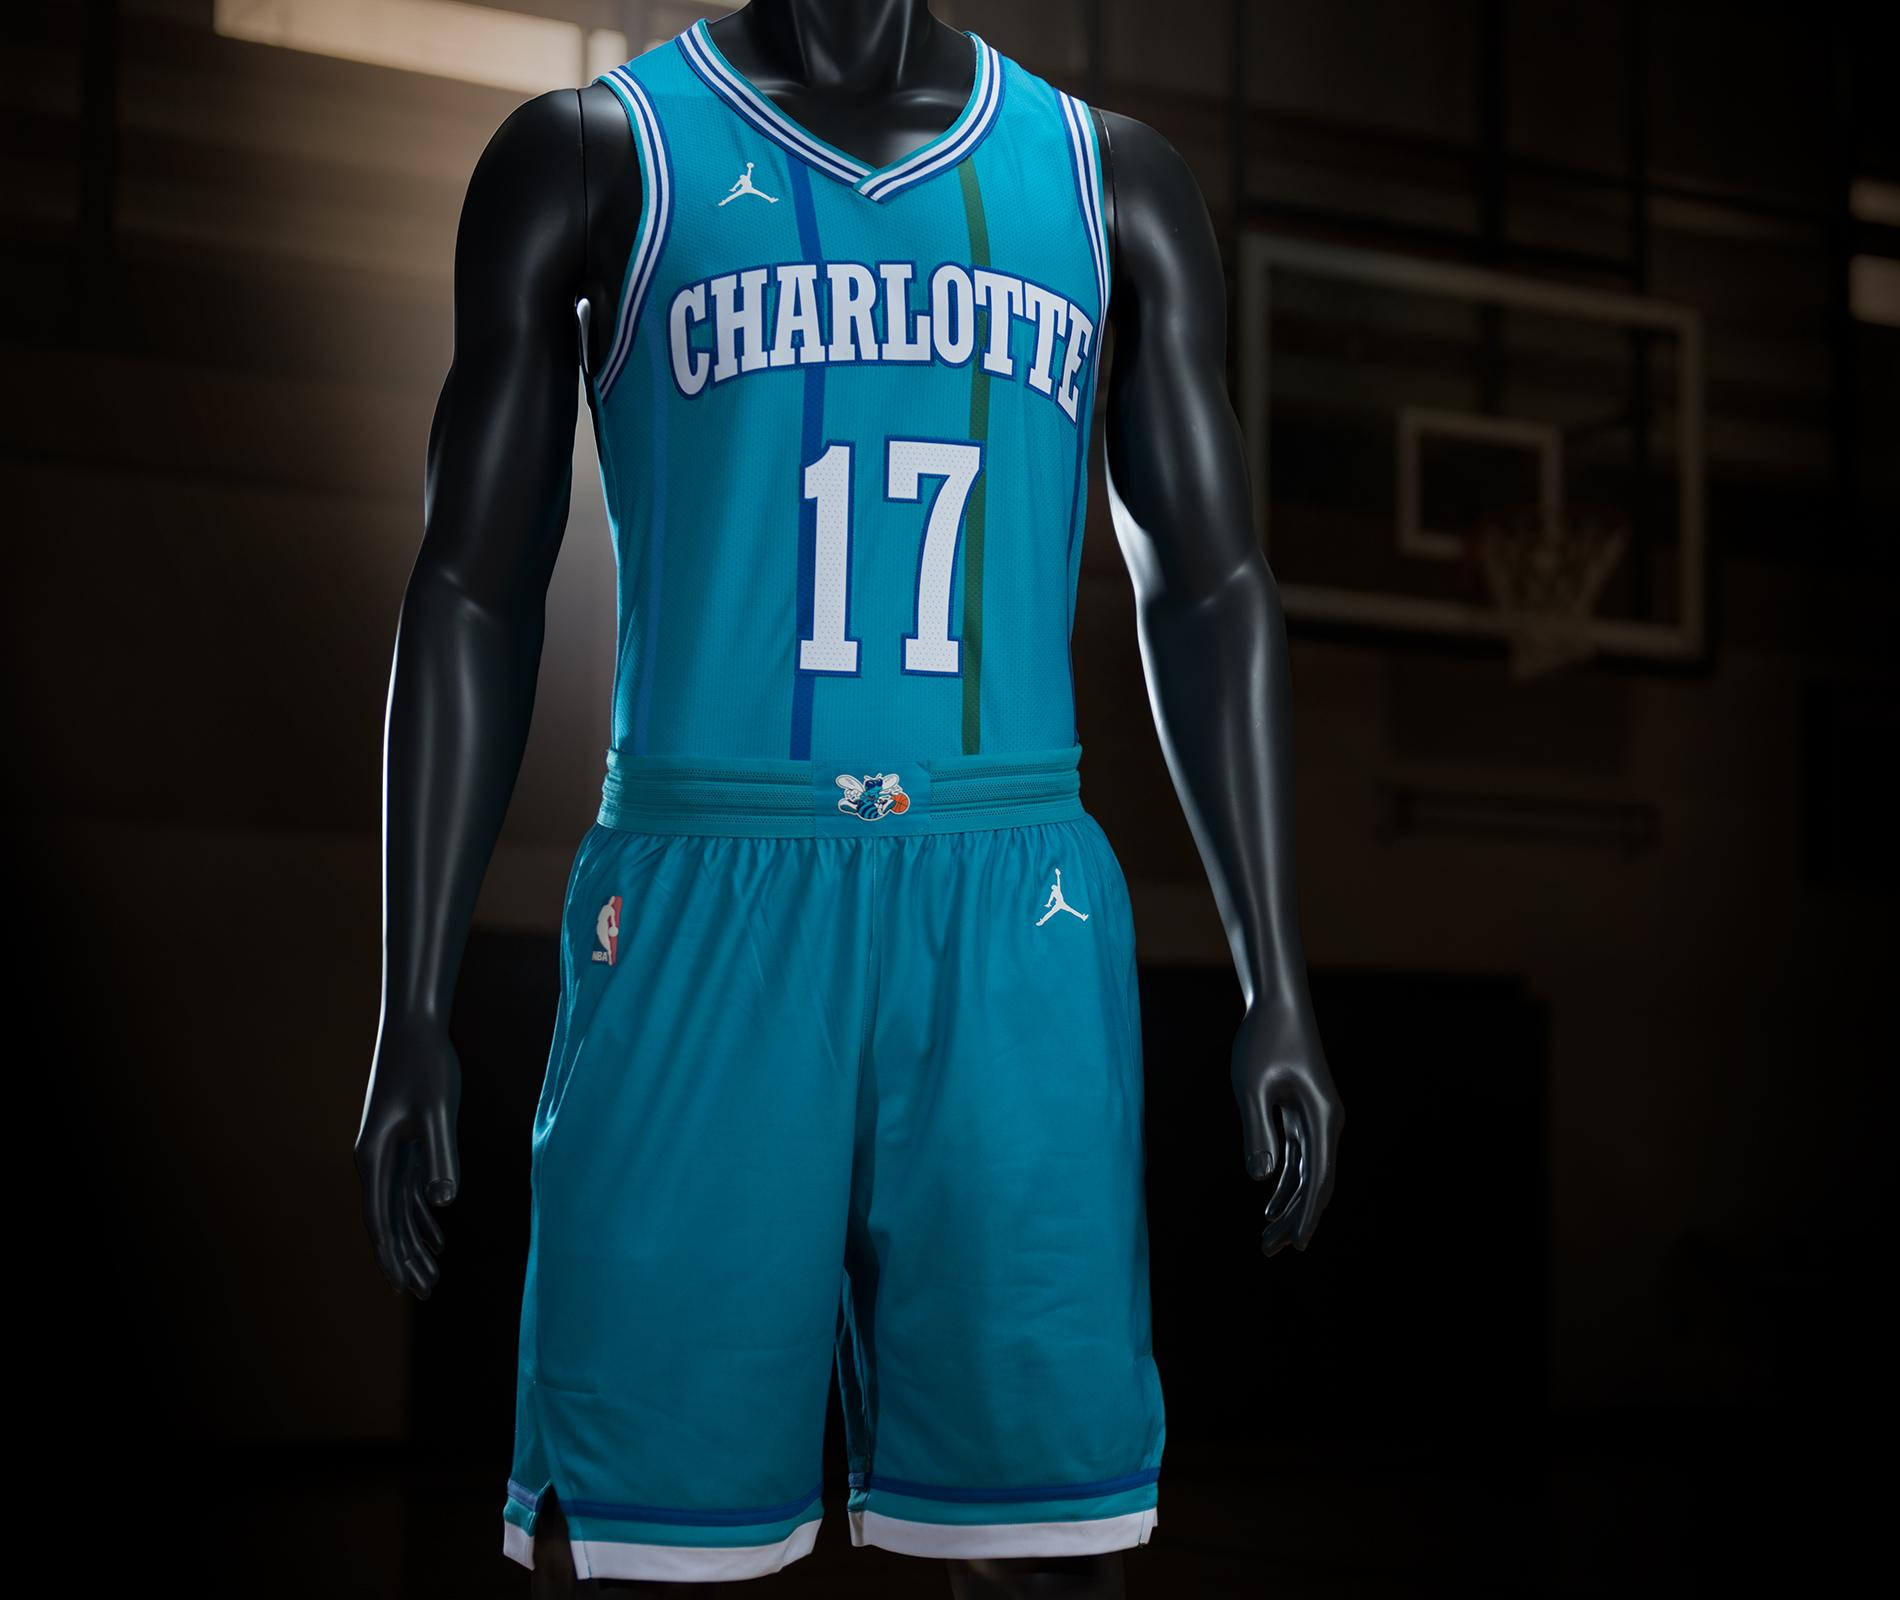 91eaa190d14 Charlotte will wear the classic uniforms for three home games in  2017-2018 Â November 15 against the Cleveland Cavaliers